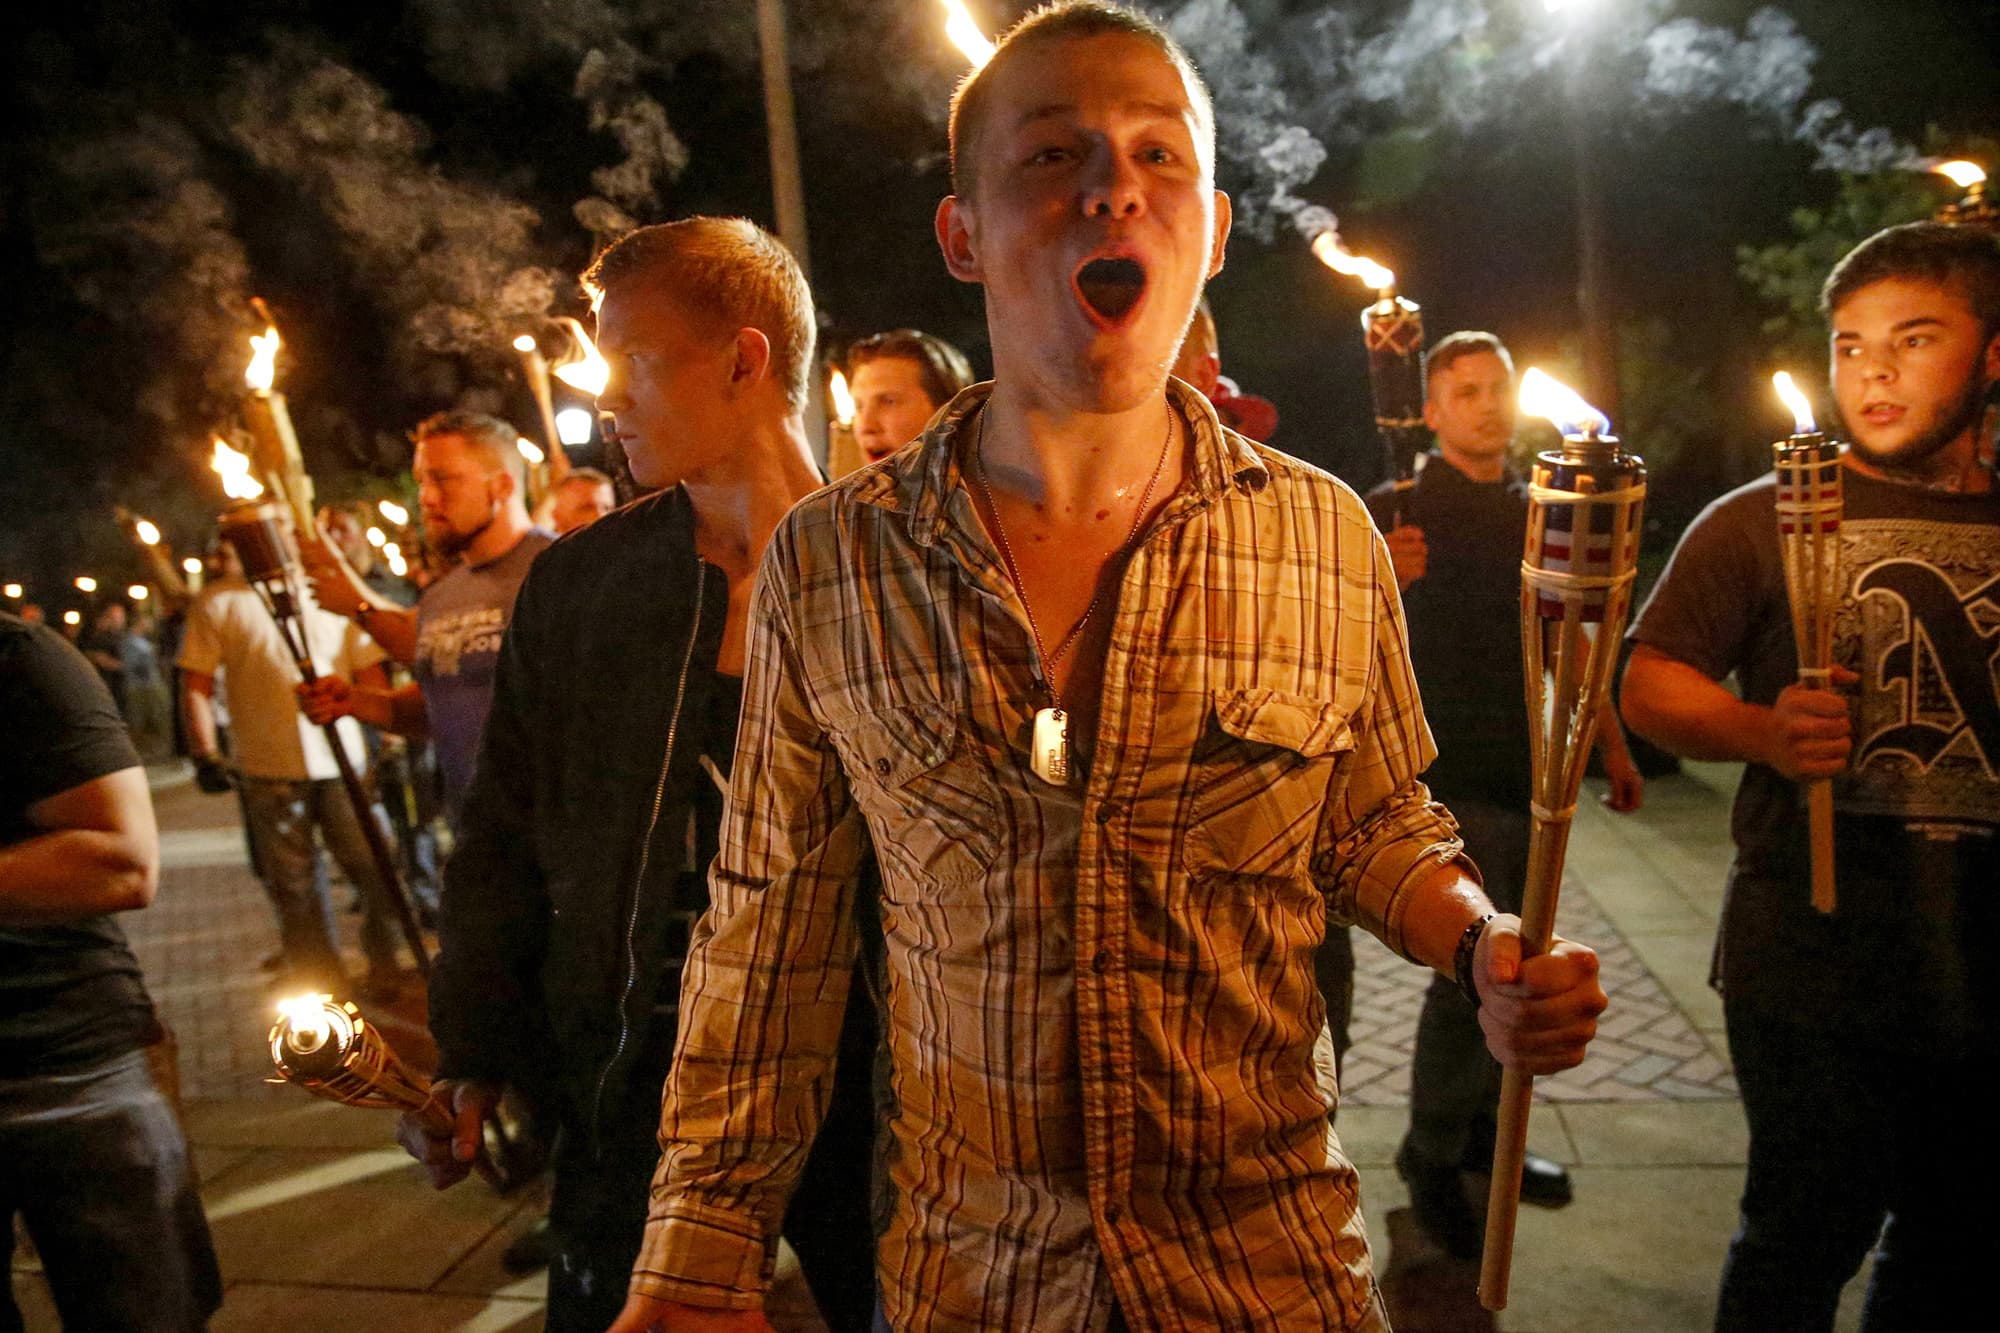 Multiple white supremacist groups march with torches through the UVA campus in Charlottesville. ─ AP